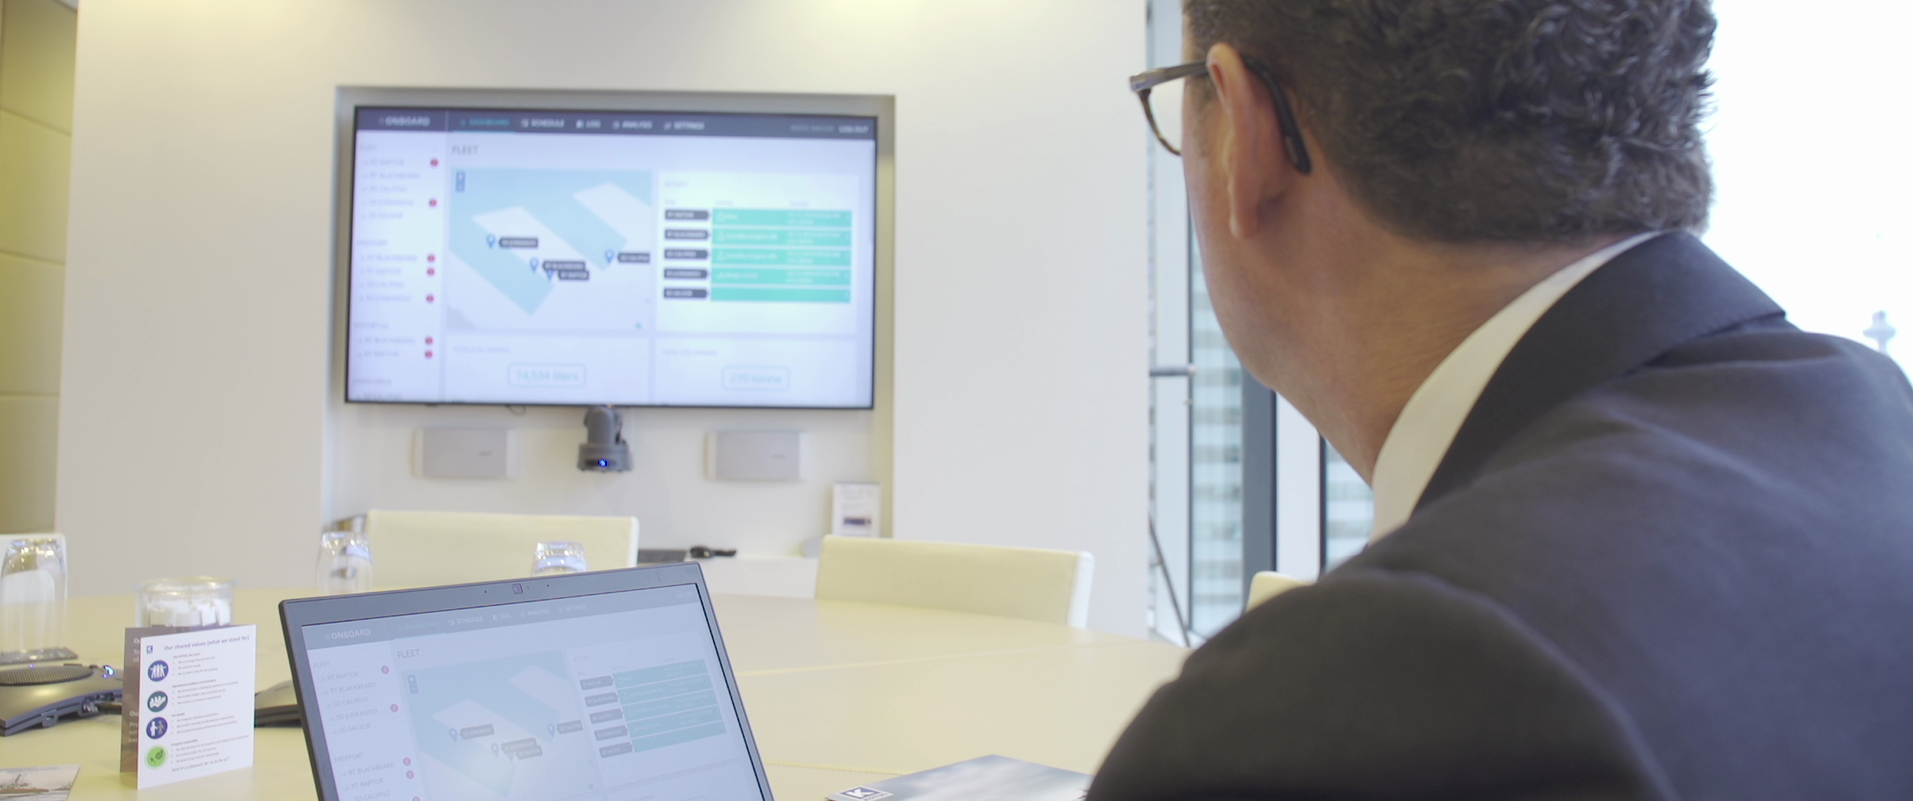 <i>Watch Onboard apps in action</i> with our customer KOTUG